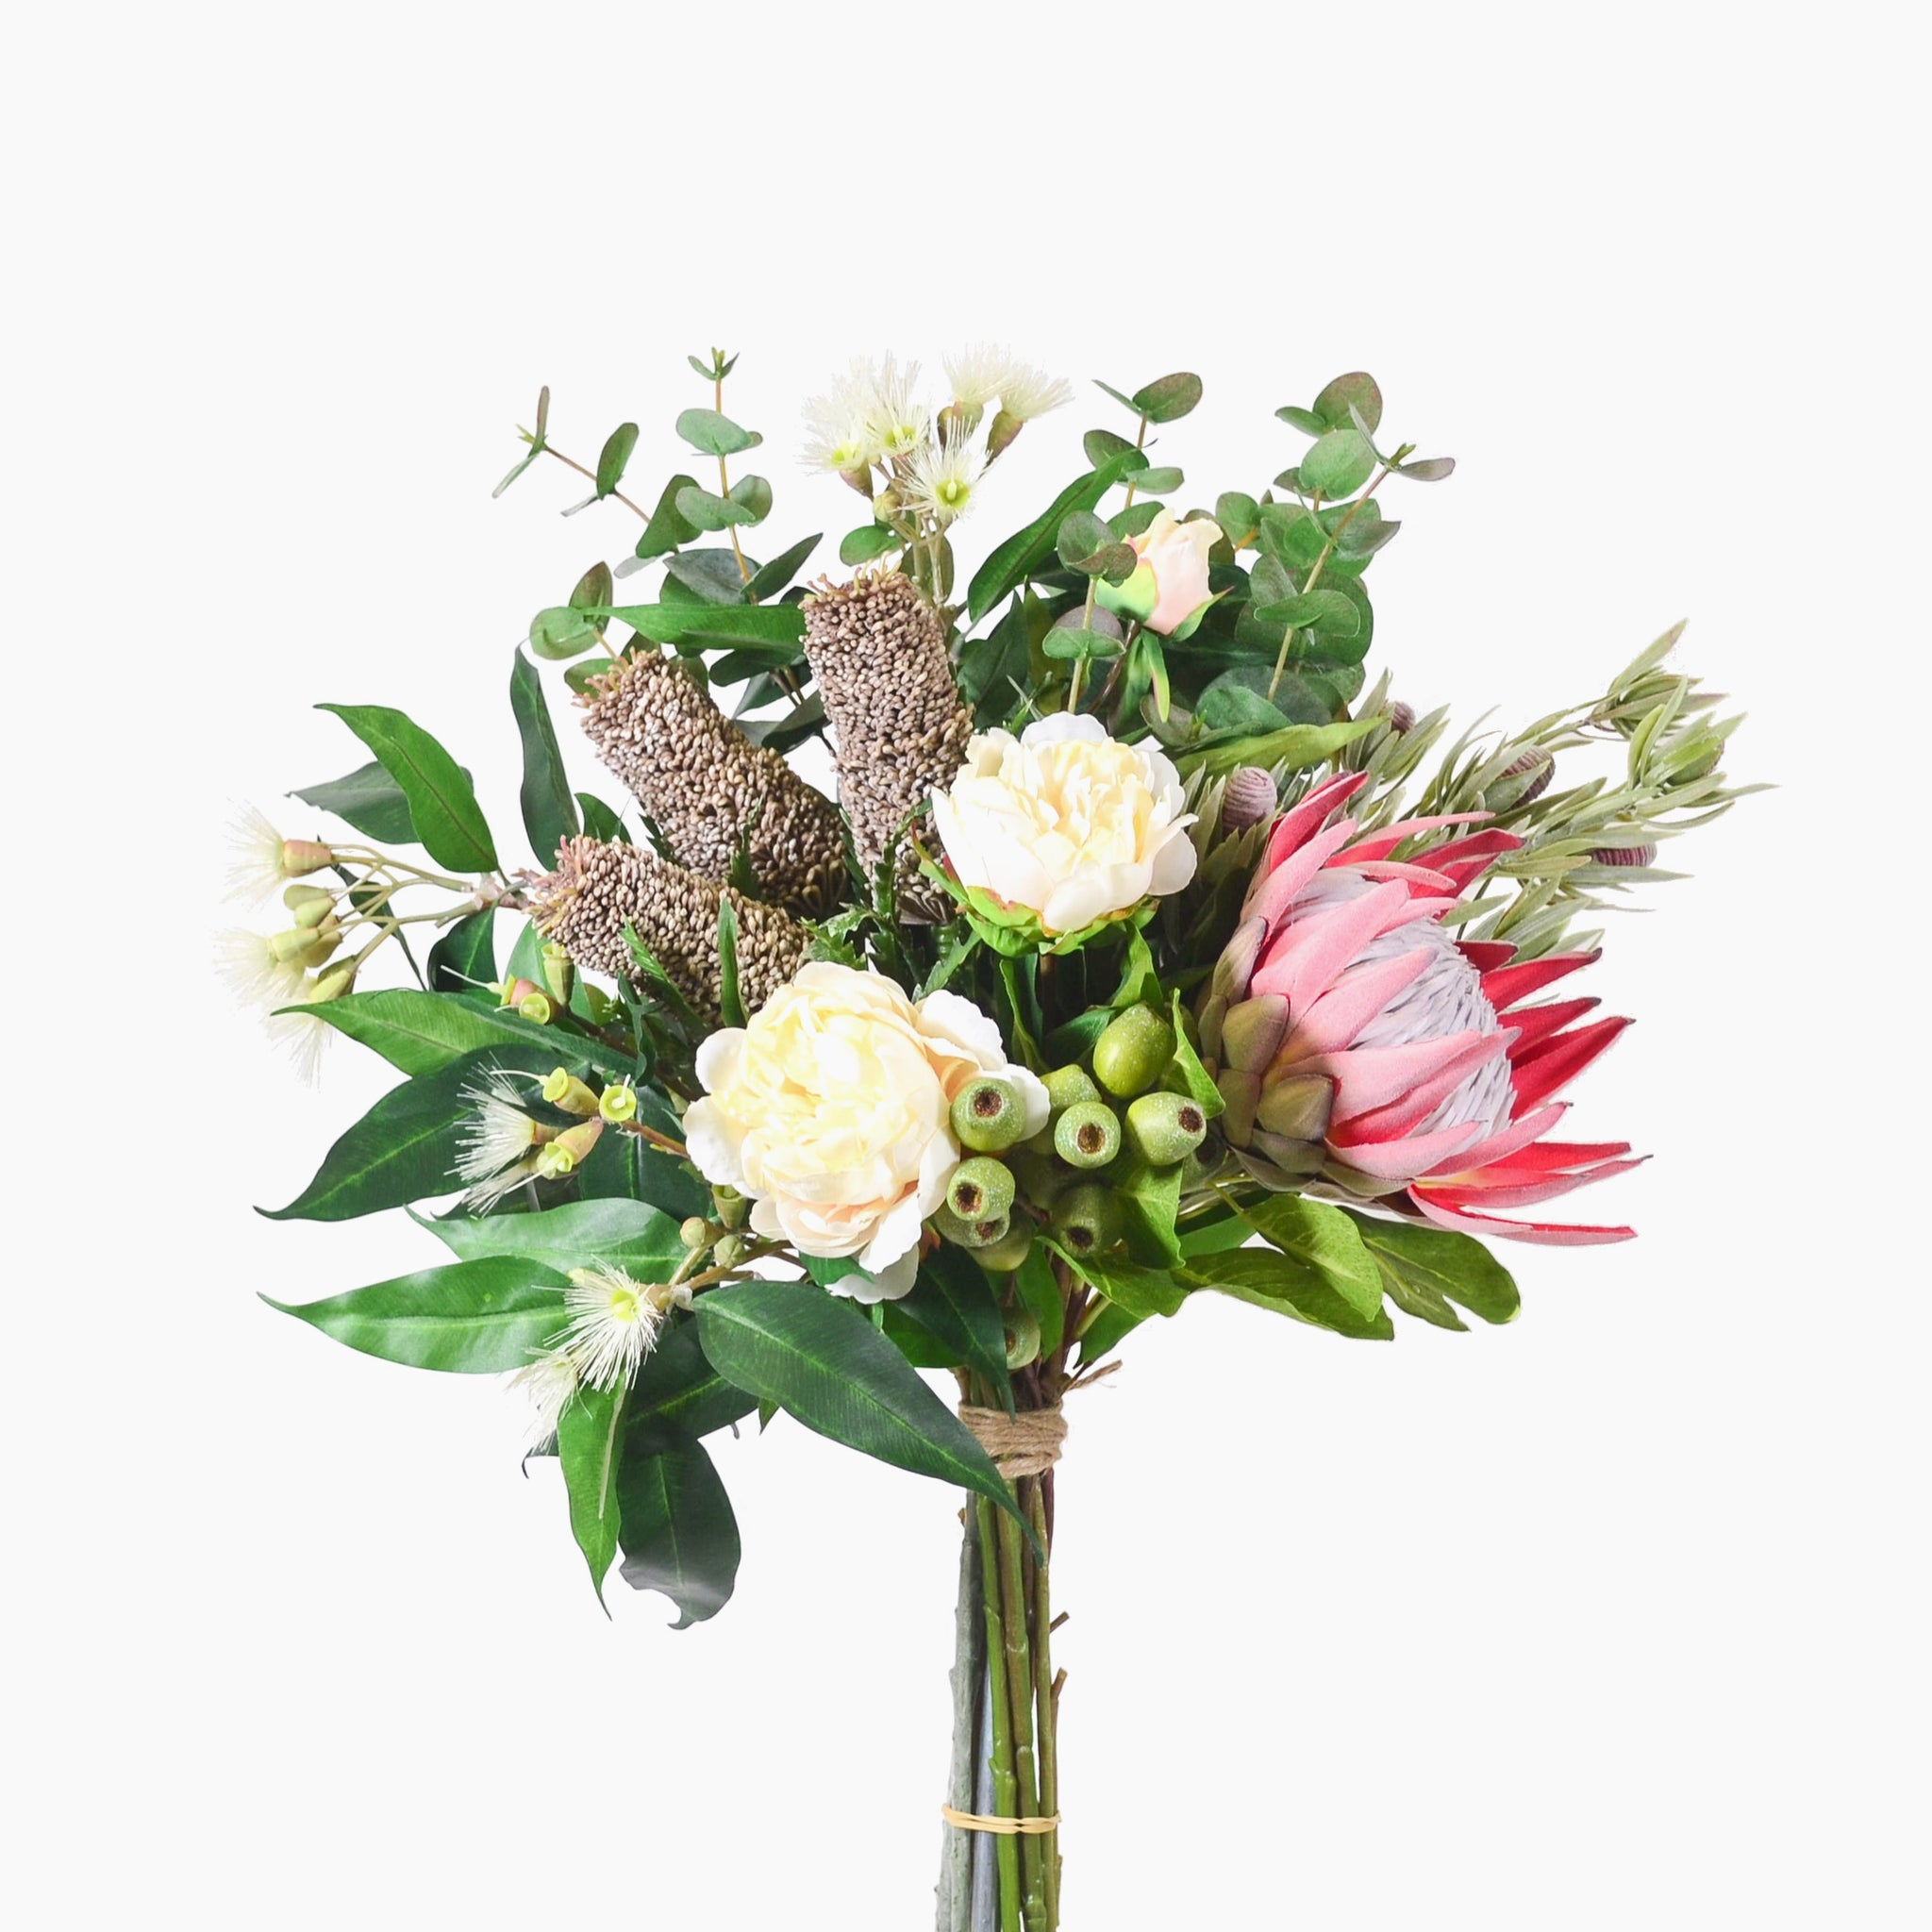 Pencil banksia, king protea, peony and leucadendron with eucalyptus blossom